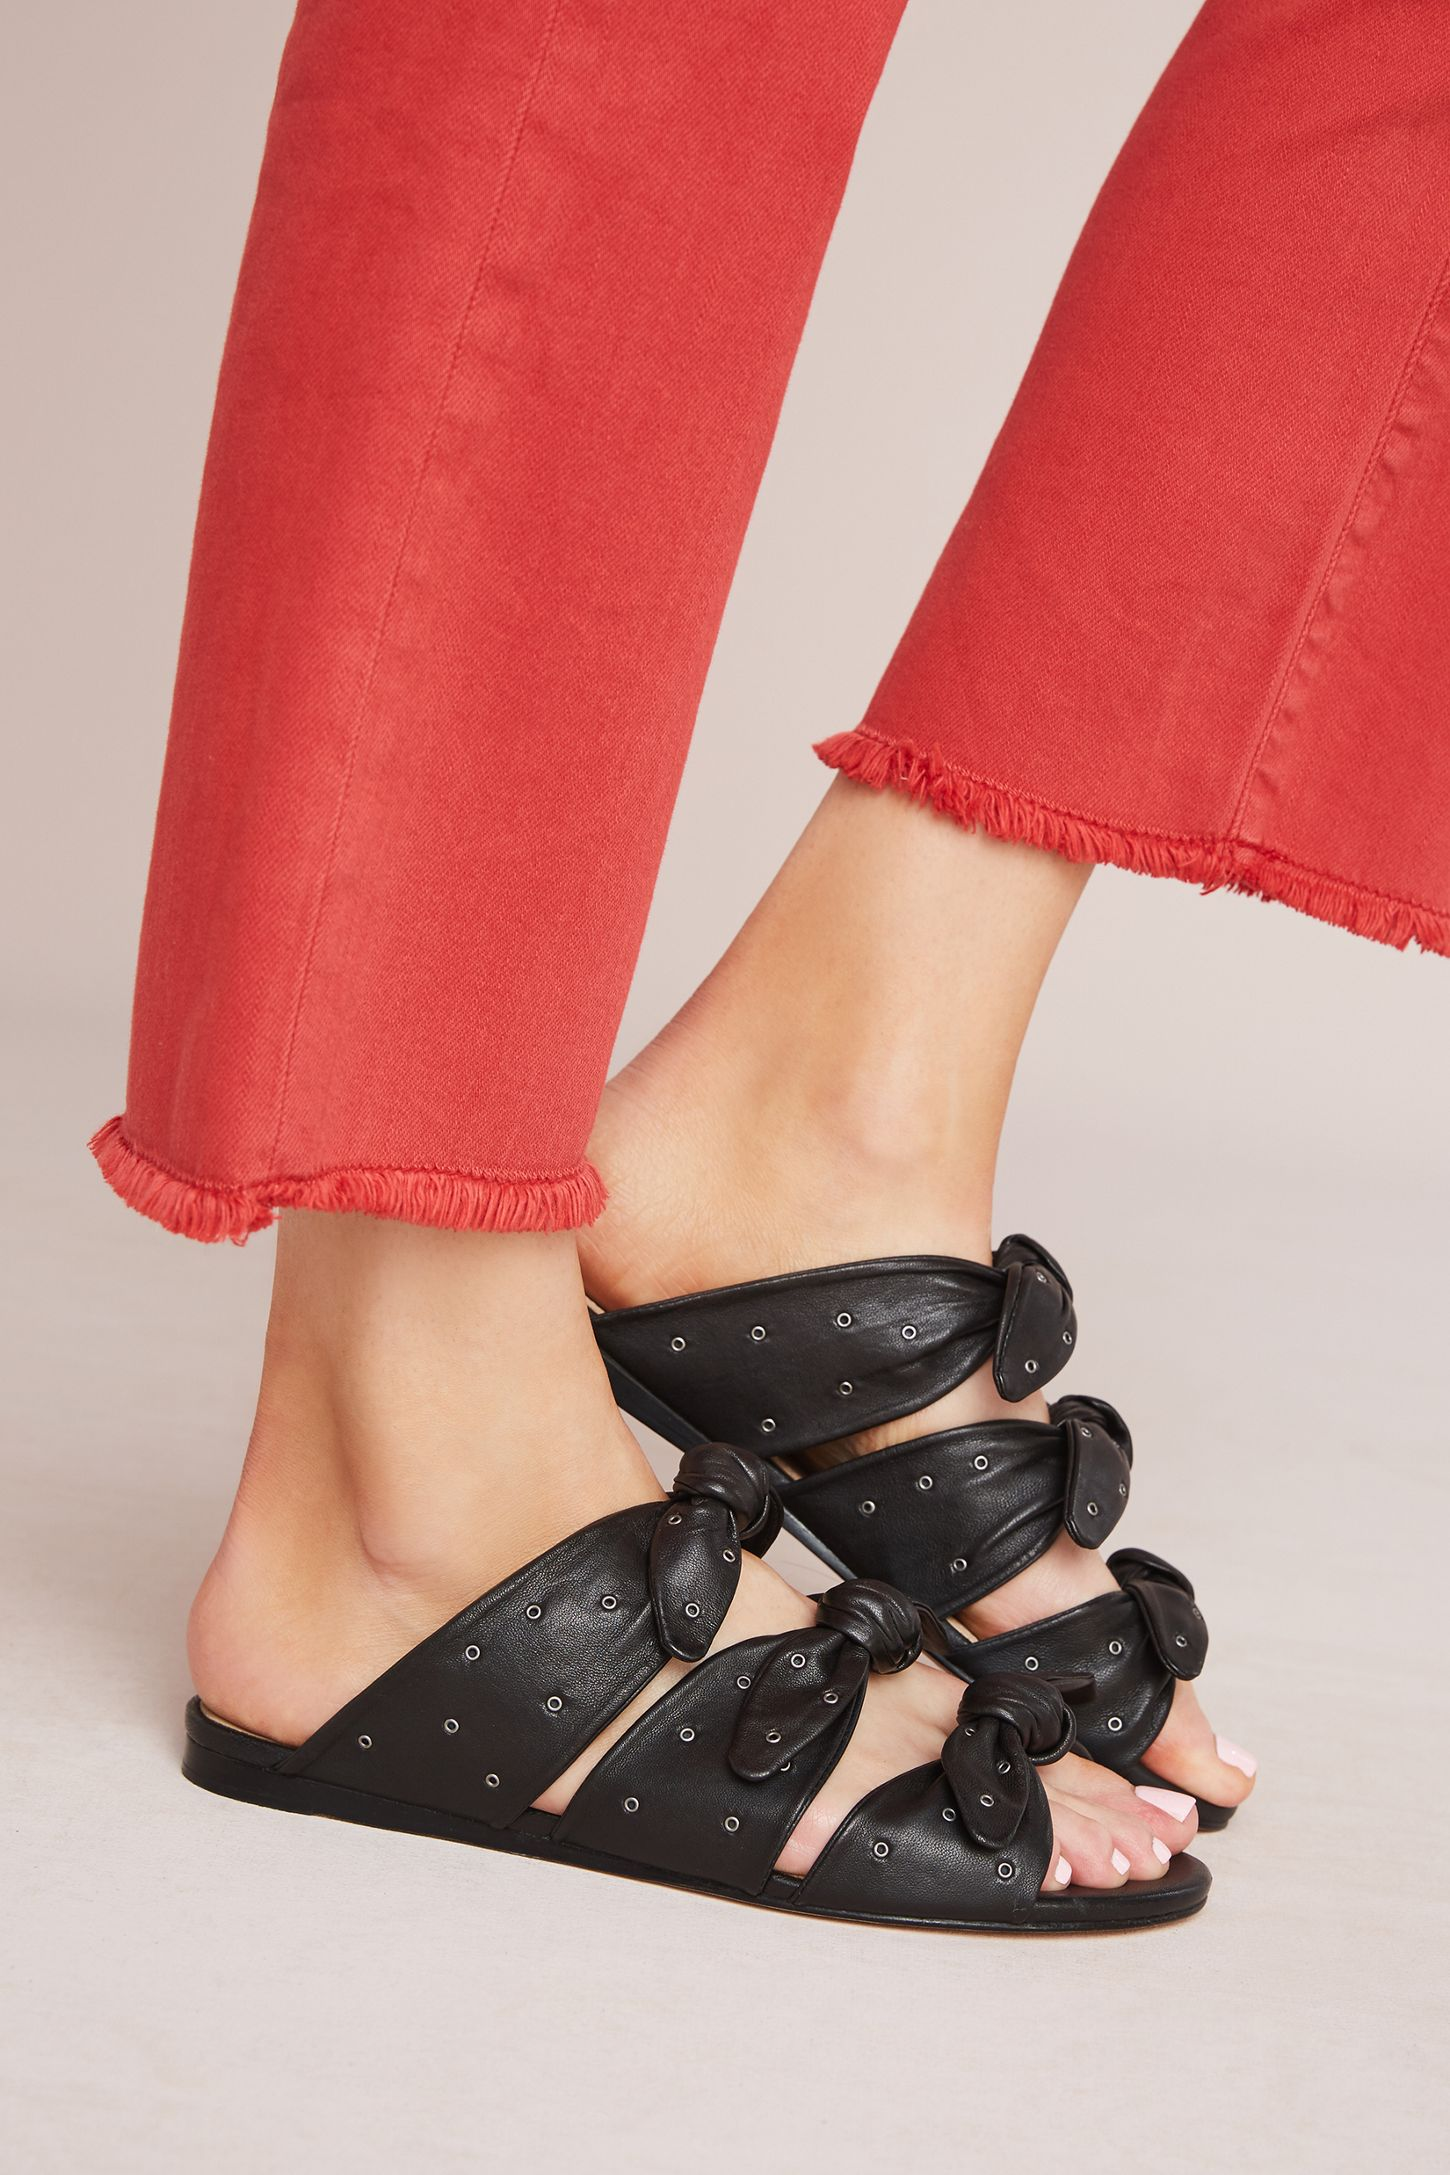 59815e4c245 Pour La Victoire Logan Bow Slide Sandals. Tap image to zoom. Hover your  mouse over an image to zoom. Double Tap to Zoom